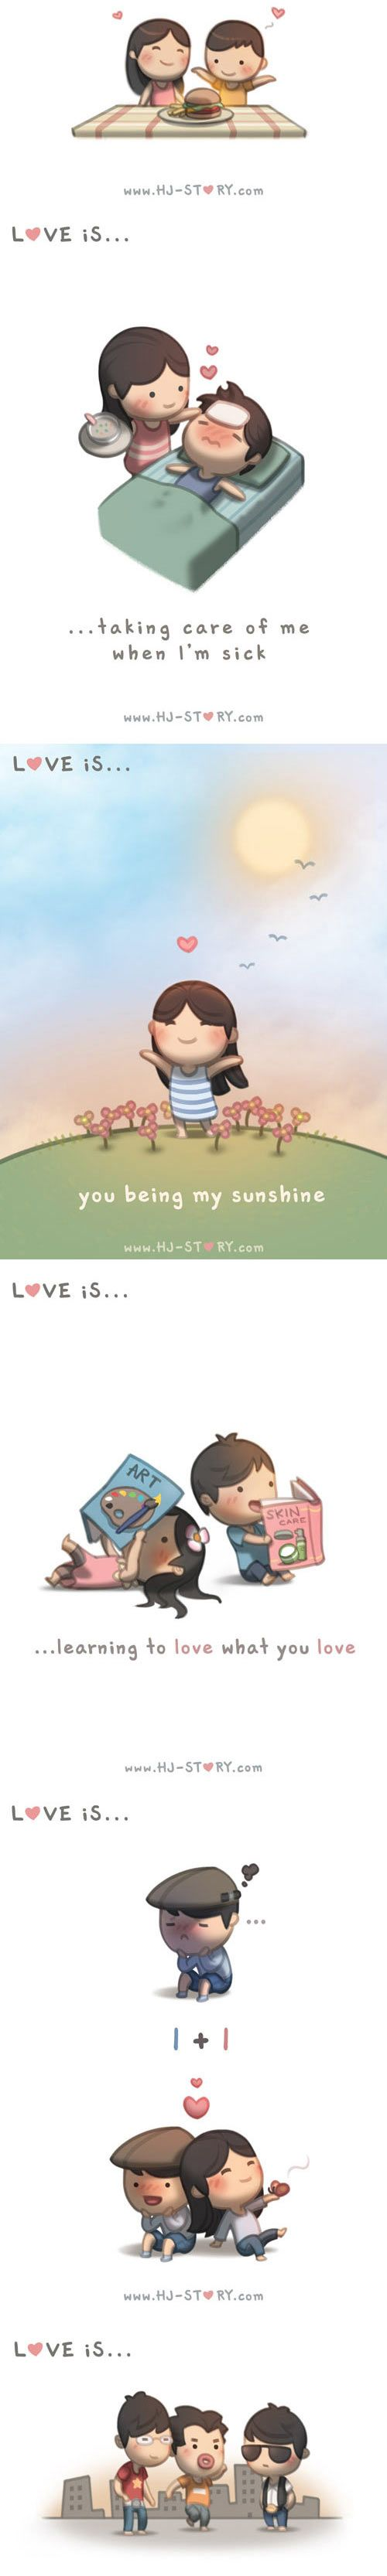 cool-love-comic-cute-drawings-heart